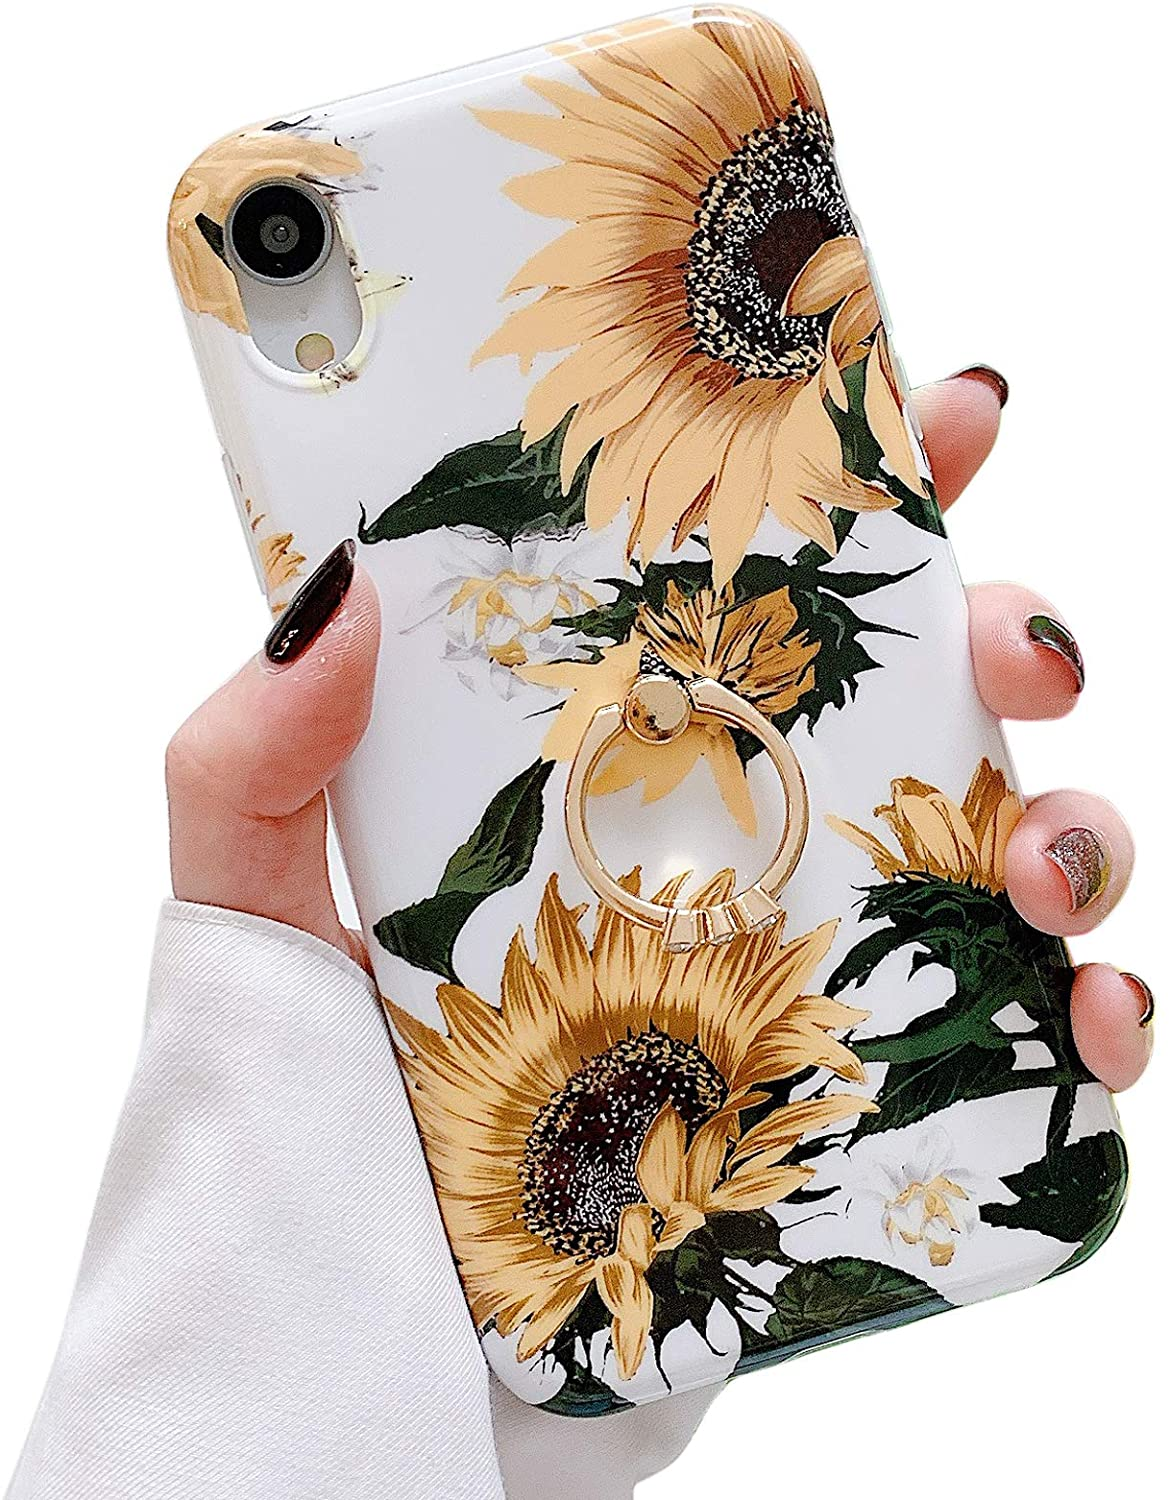 Qokey Compatible with iPhone XR Case,Flower Case Cute Fashion for Men Women Girls with 360 Degree Rotating Ring Kickstand Soft TPU Shockproof Cover Designed for iPhone XR 6.1 Inch Yellow Sunflower